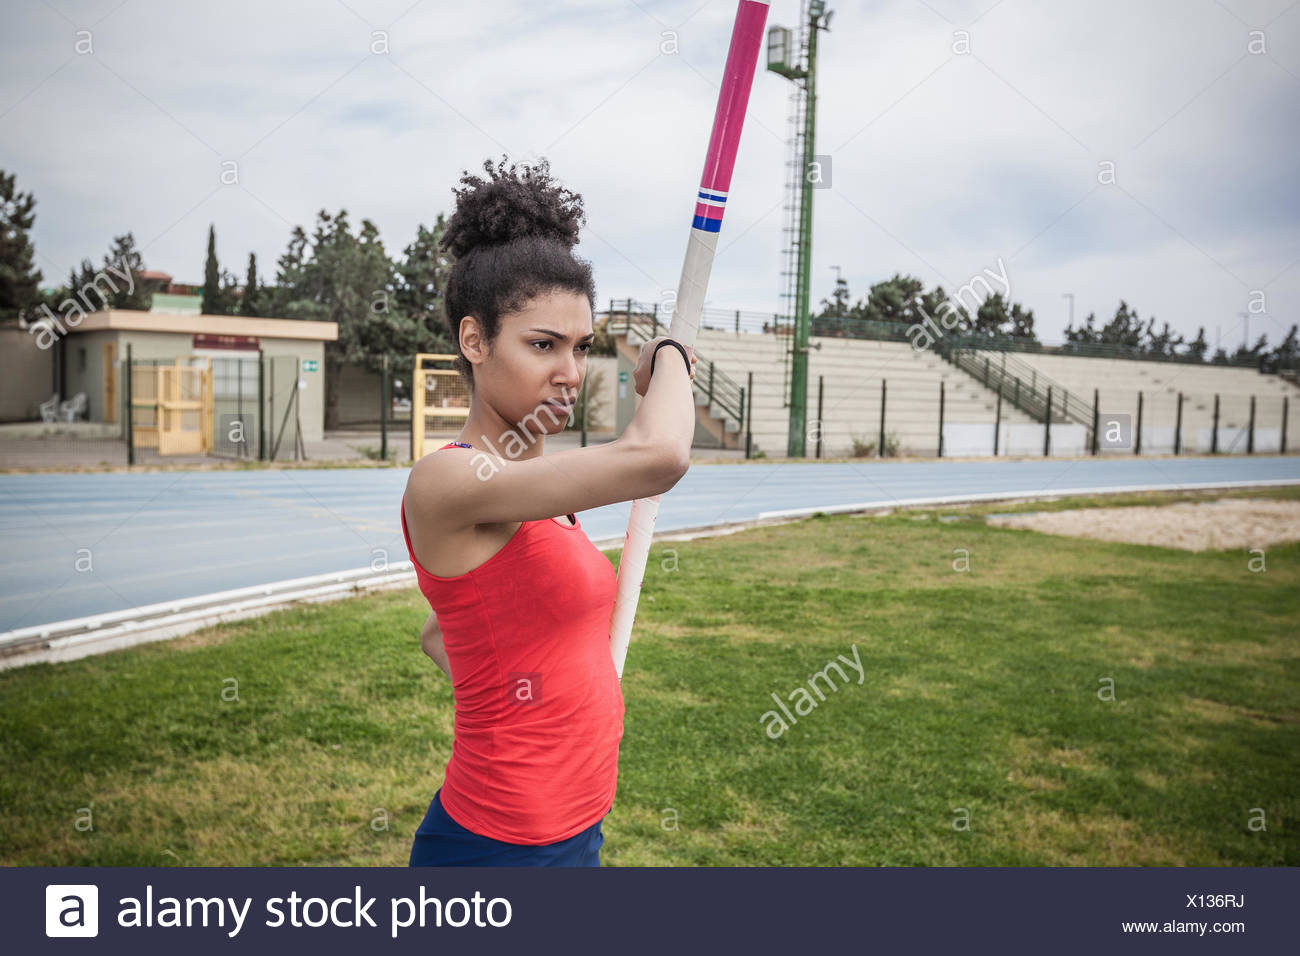 Young female pole vaulter concentrating at sport facility - Stock Image